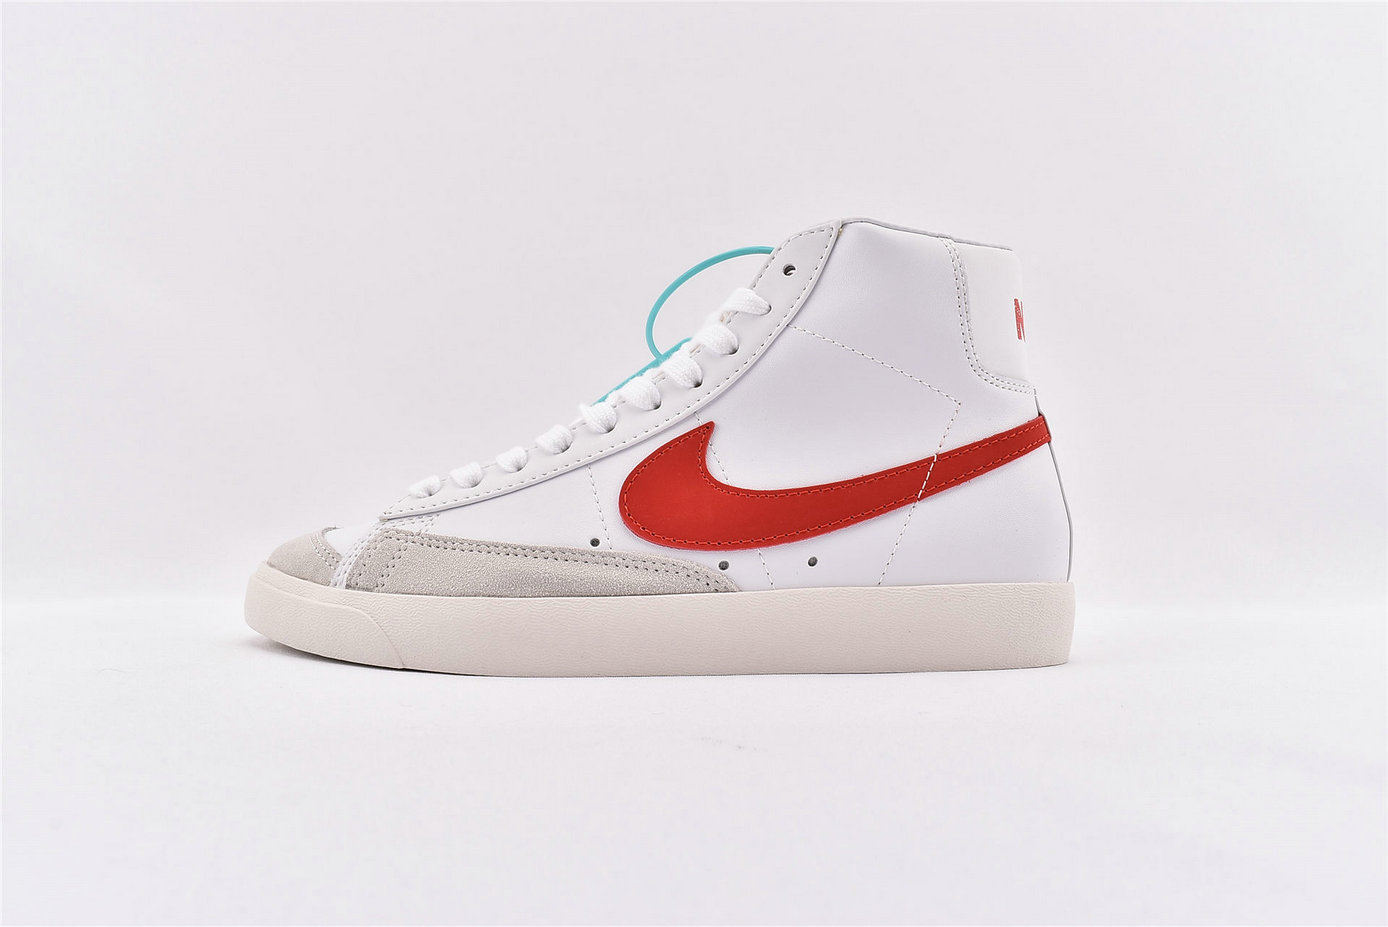 Where To Buy Womens Nike Blazer Mid 77 VNTG Habanero Red Sail - White BQ6806-600